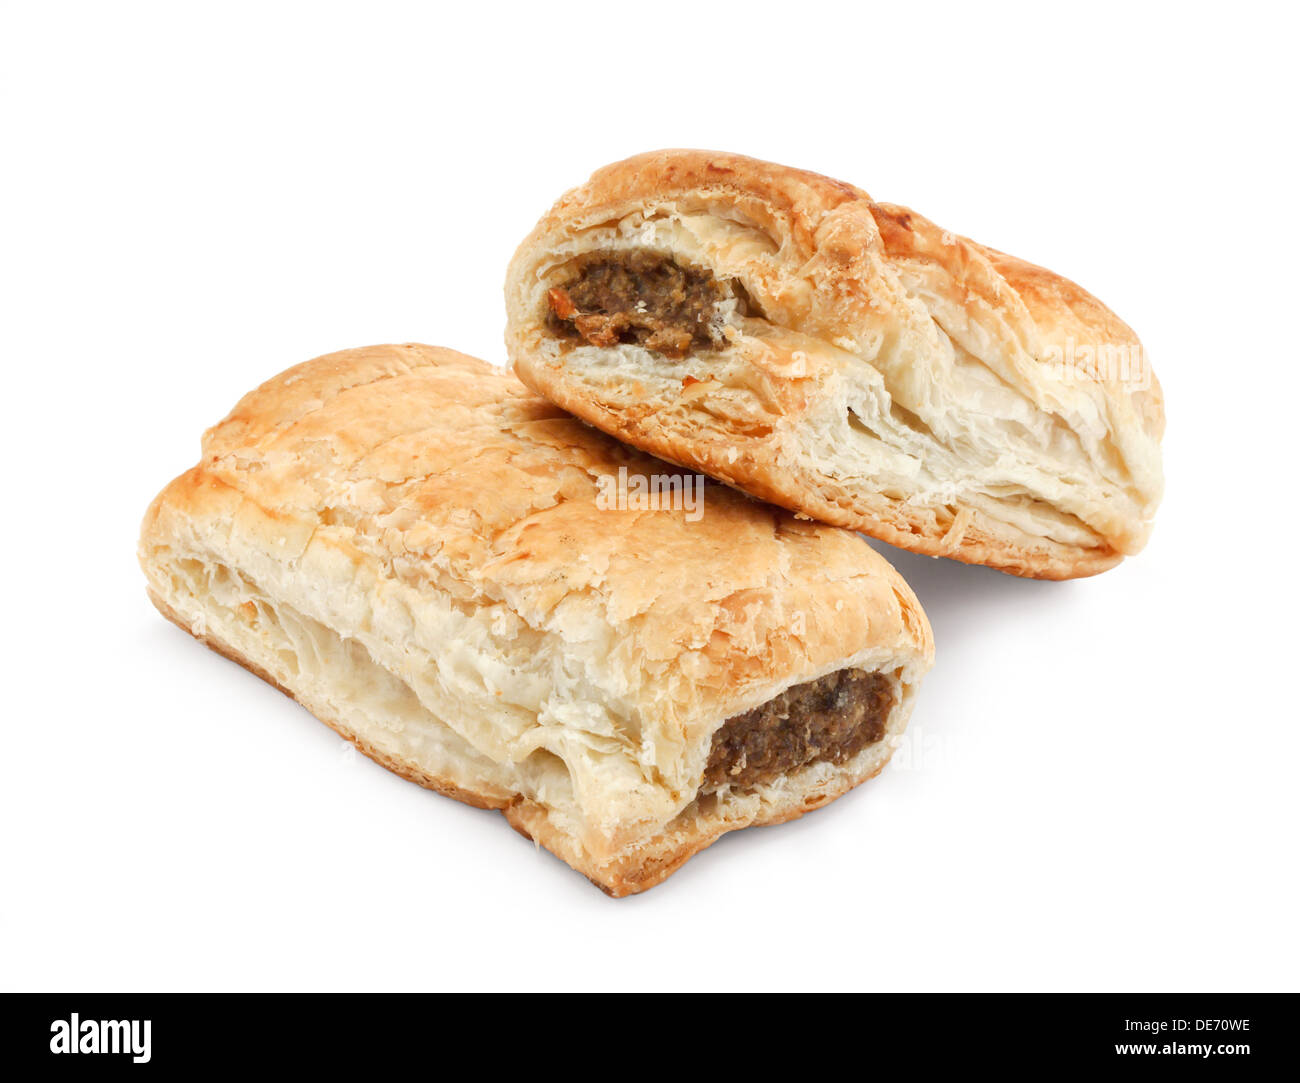 Pair of sausage rolls a popular snack in britain available freshly baked from bakers - Stock Image